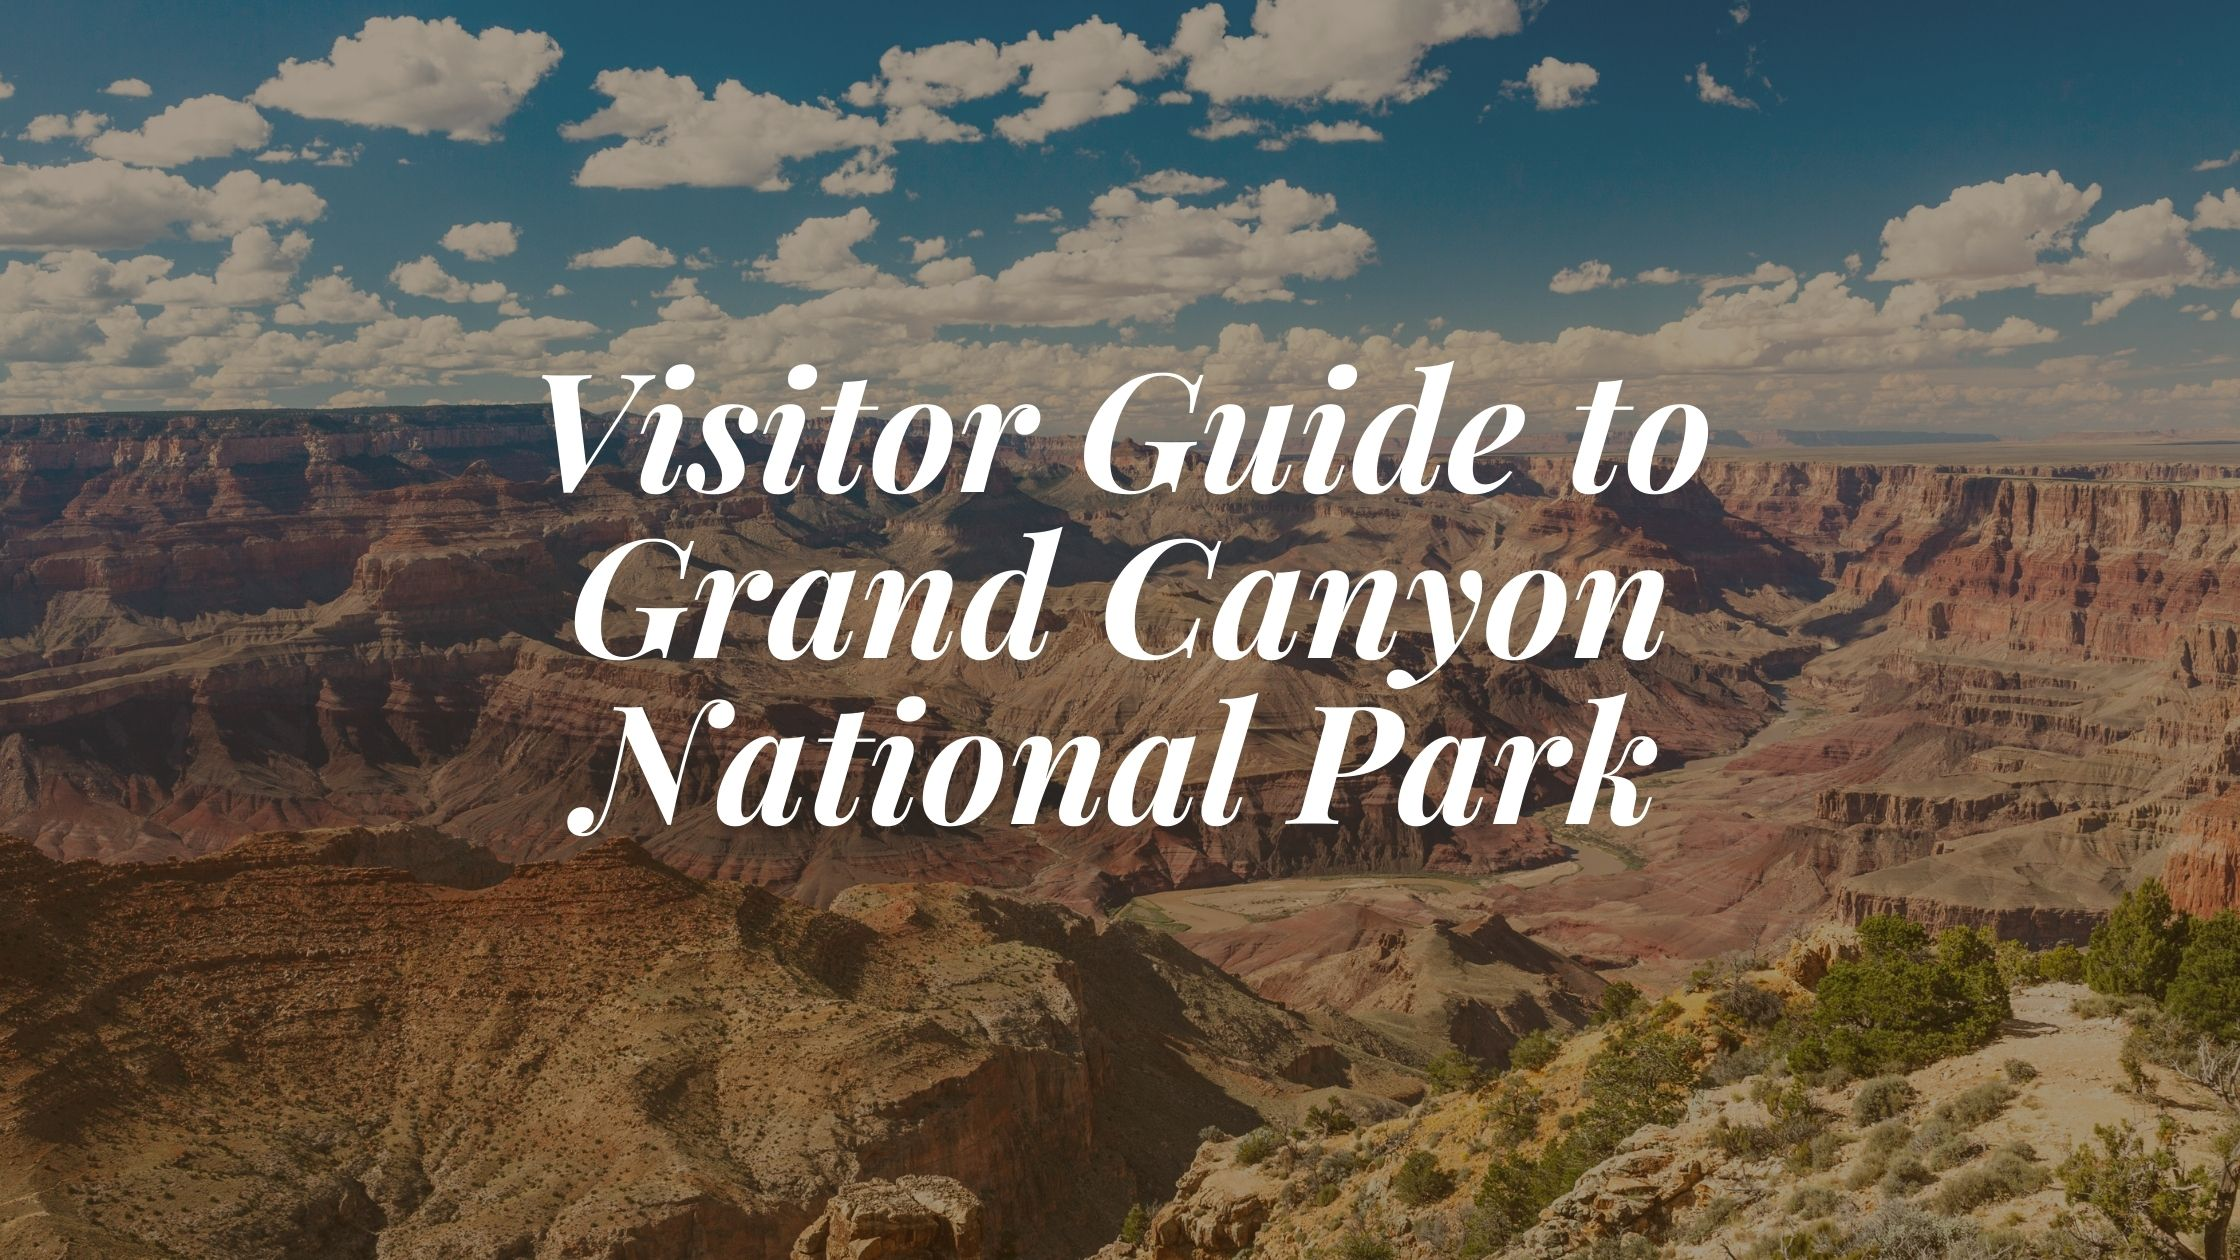 Visitor Guide to Grand Canyon National Park